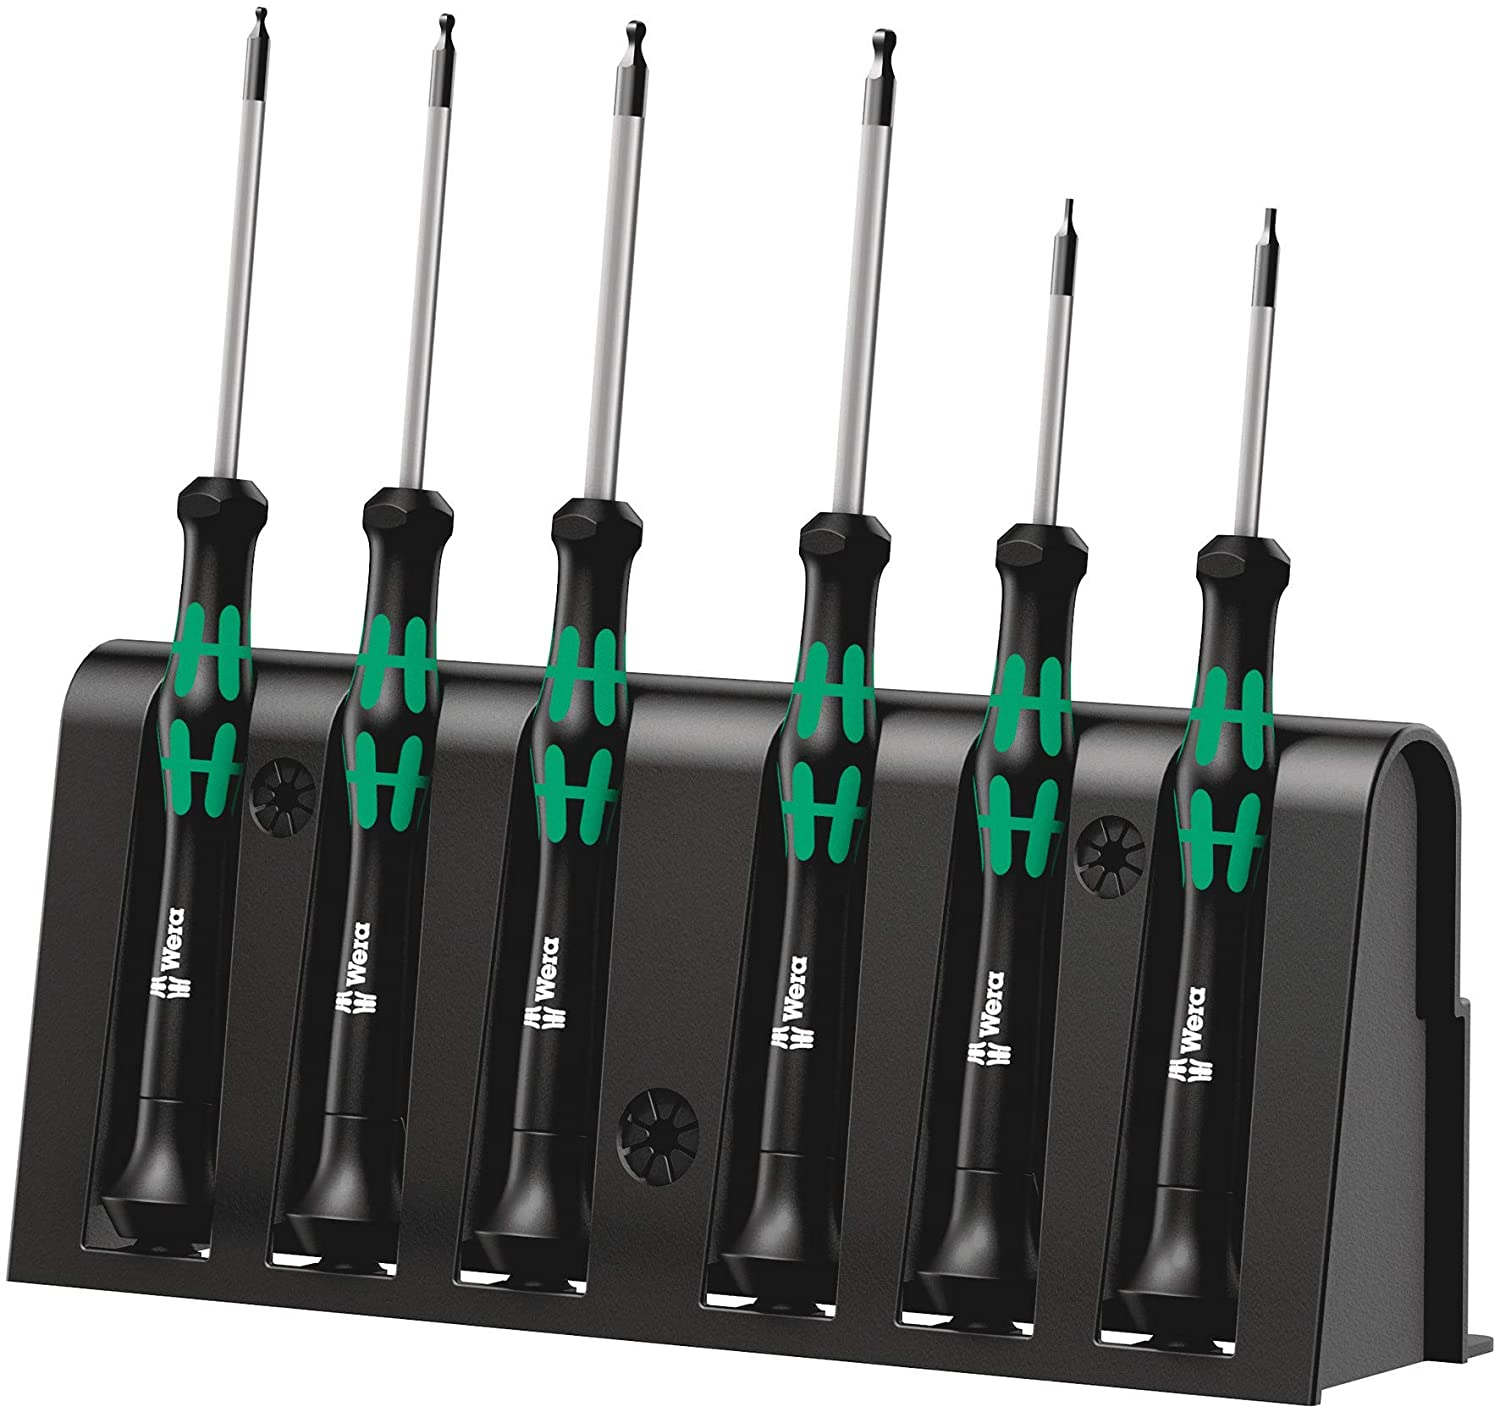 Wera 2052/6 Kraftform Micro Ballhead Hexagon Electronics Screwdriver Set and Rack, 6-Piece